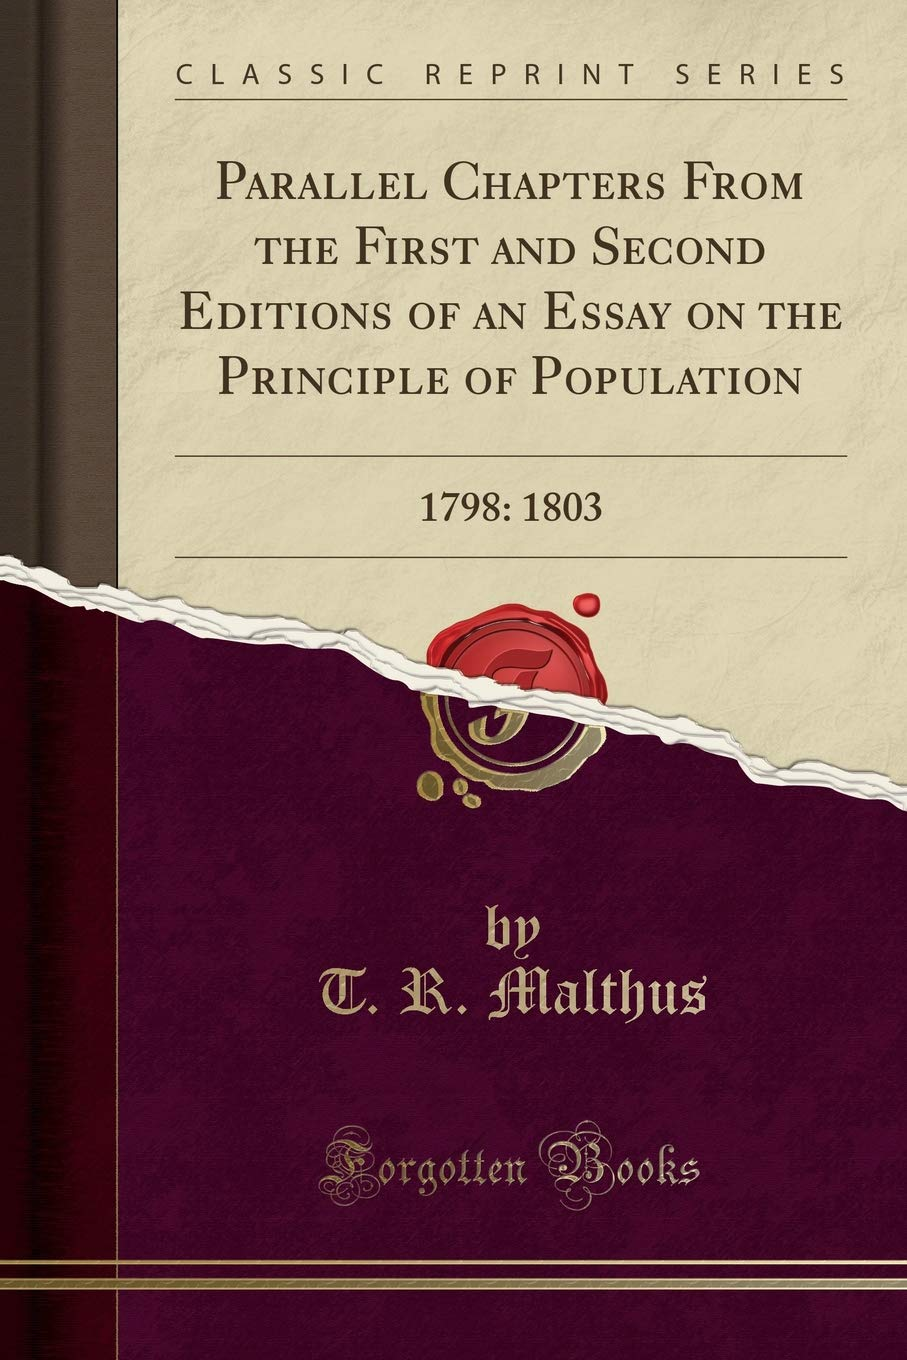 017 61xy24cllwl Essay On The Principle Of Population Singular Thomas Malthus Sparknotes Advocated Ap Euro Full